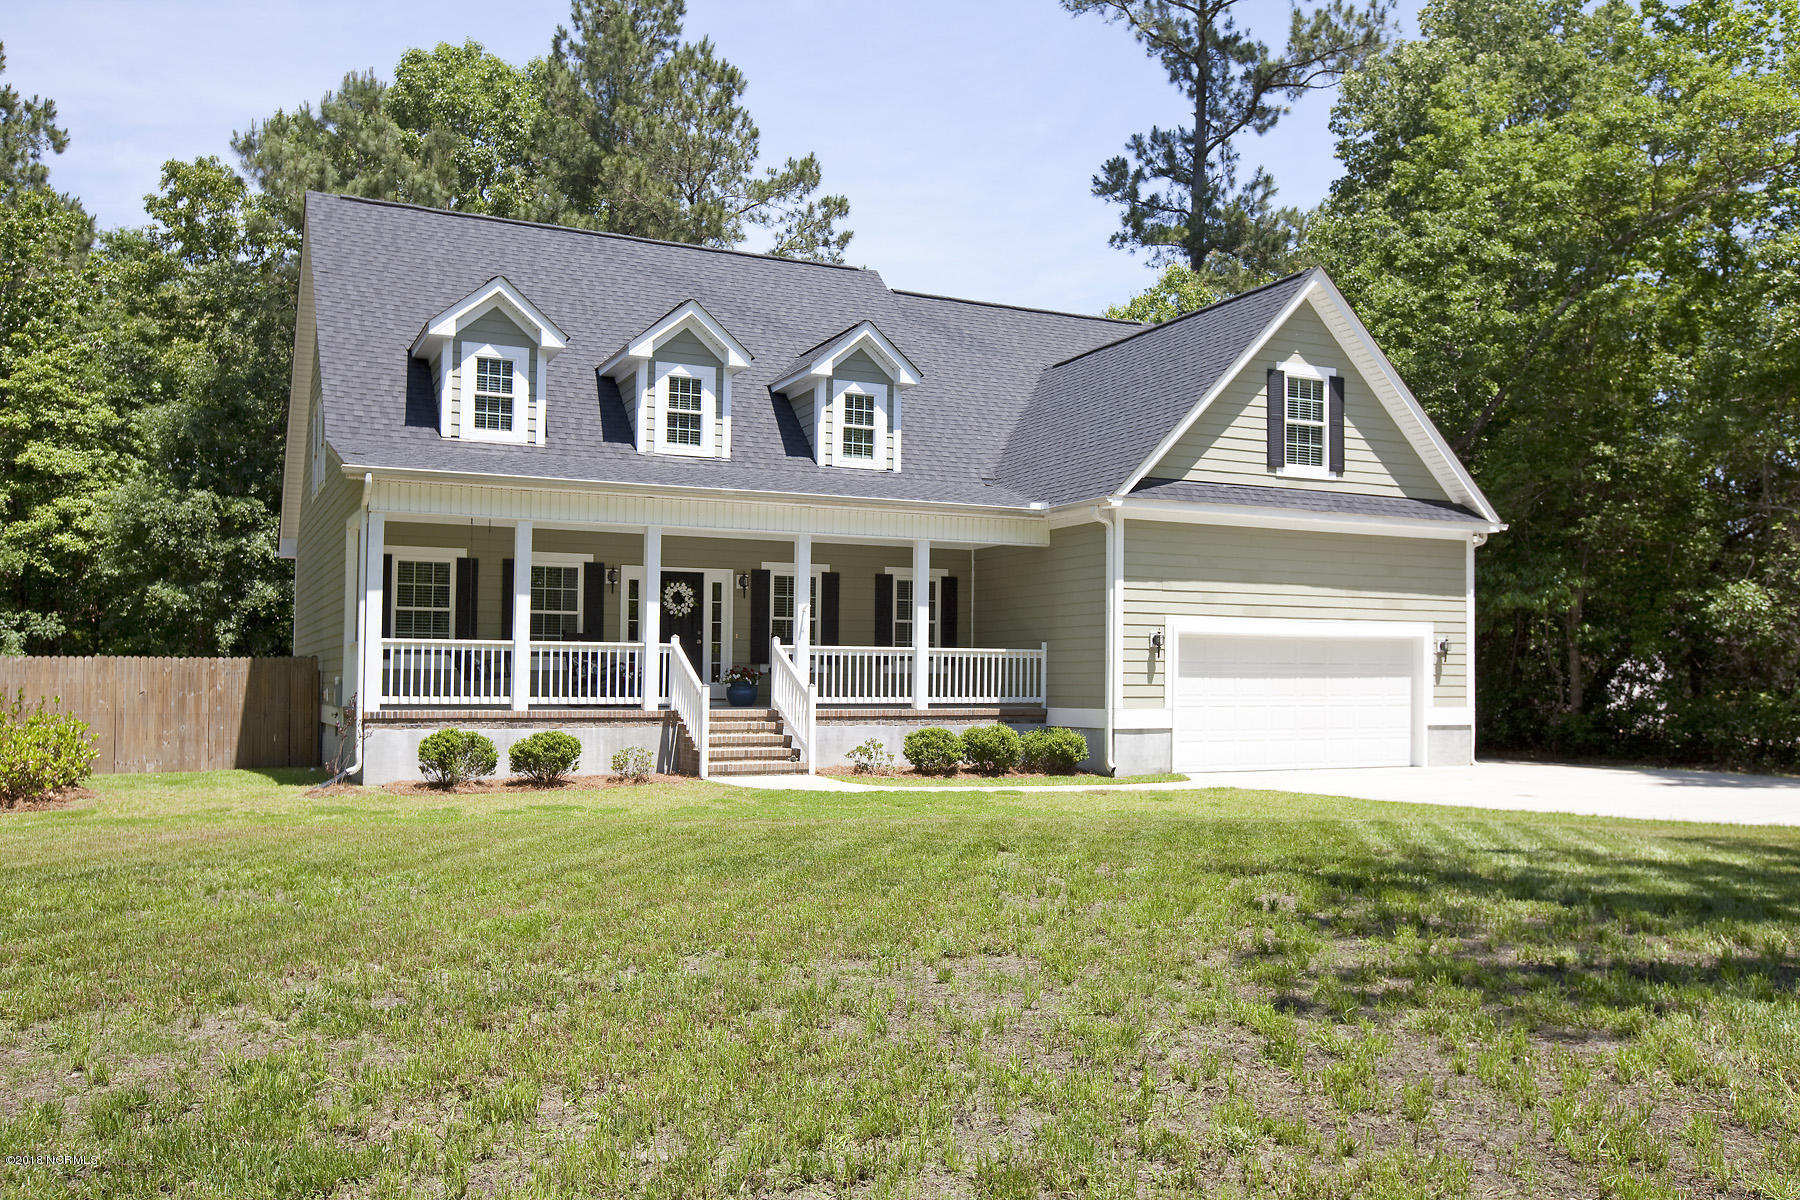 112 Spring Chase Lane, Rocky Point, North Carolina 28457, 4 Bedrooms Bedrooms, 15 Rooms Rooms,4 BathroomsBathrooms,Residential,For Sale,Spring Chase,100113429